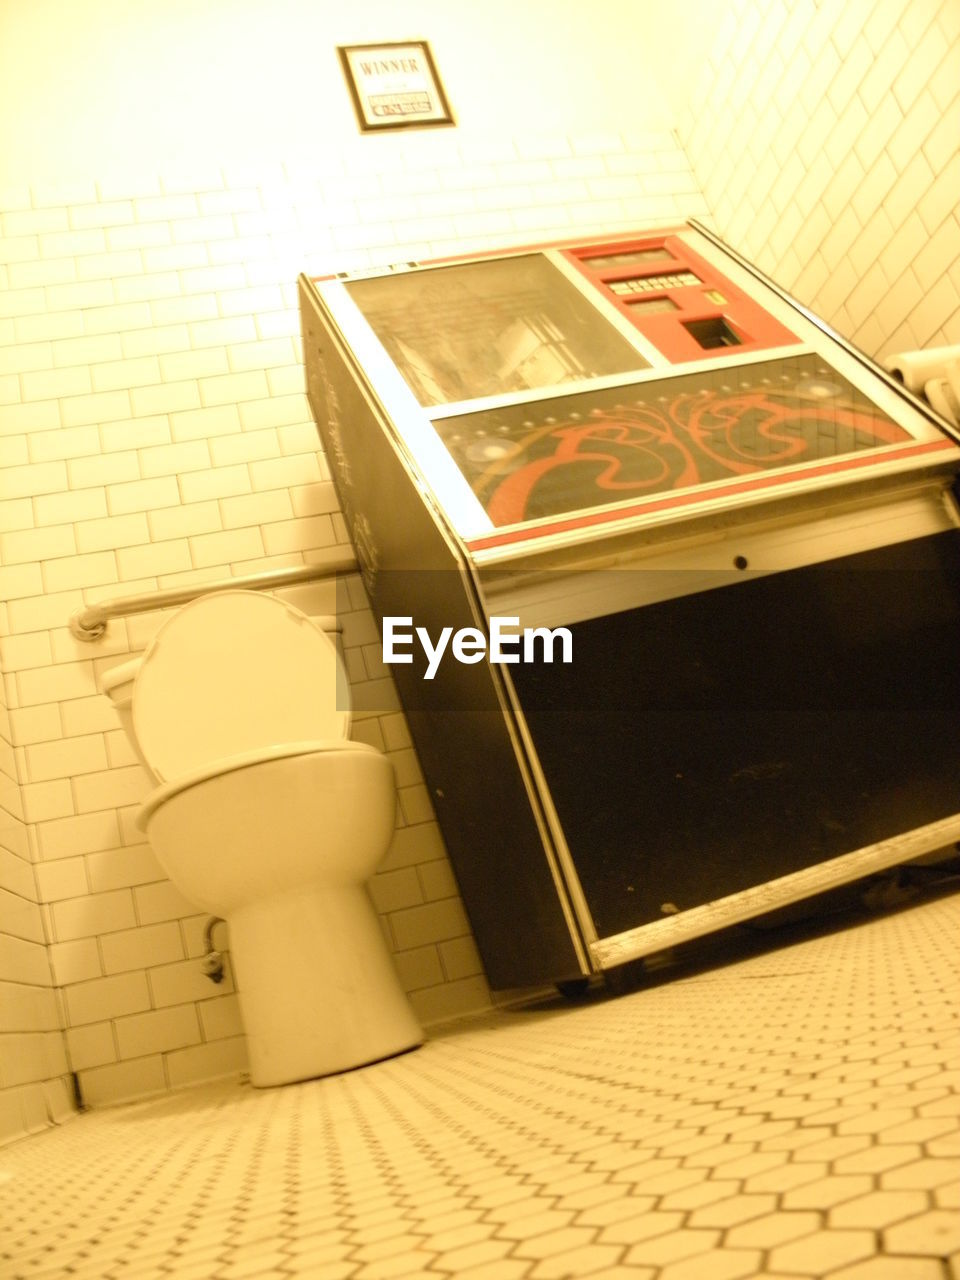 indoors, no people, tile, bathroom, urinal, day, toilet bowl, close-up, flushing toilet